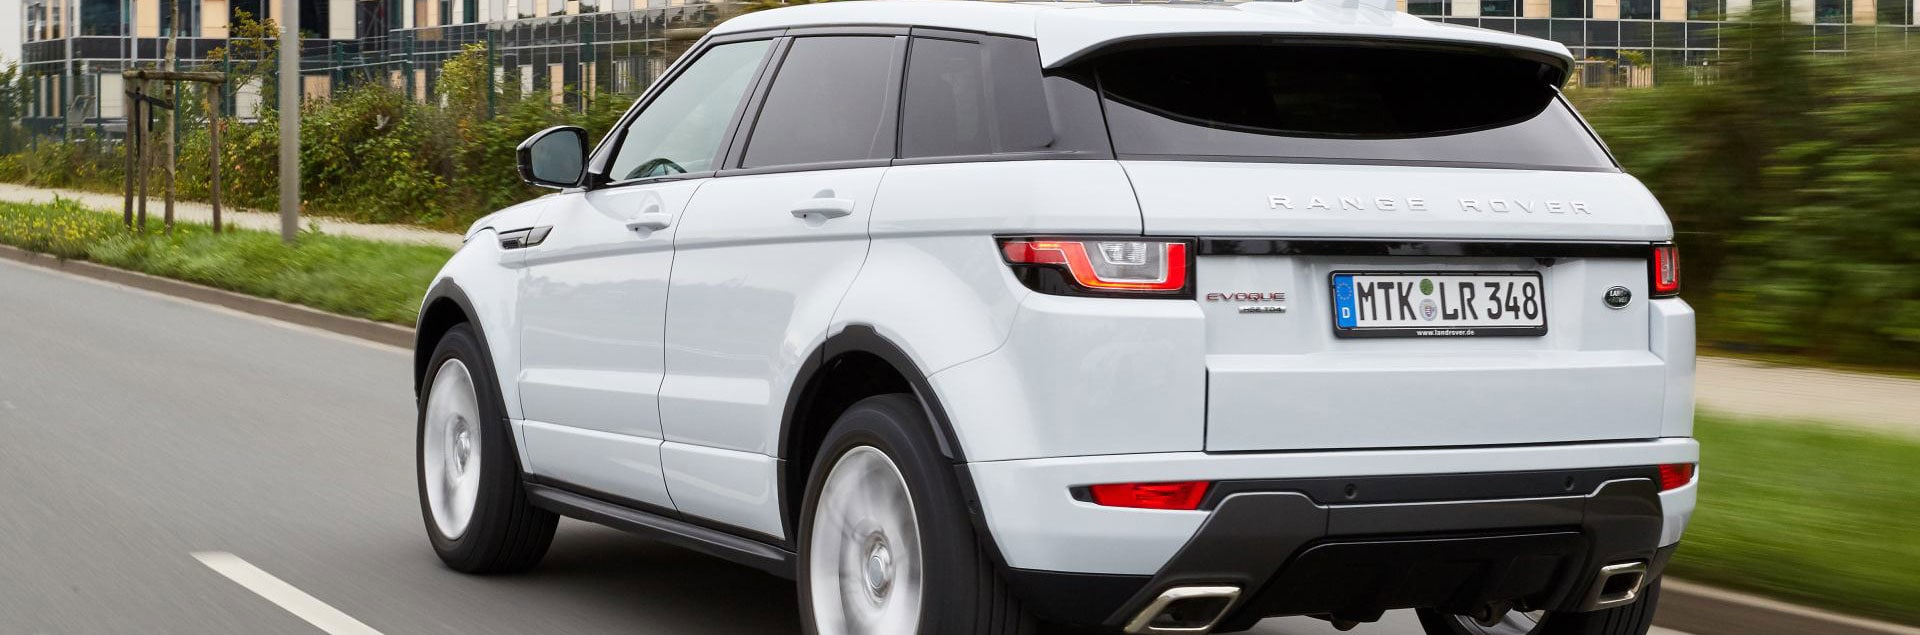 range rover evoque hse 2016 ultimate car rentals australia. Black Bedroom Furniture Sets. Home Design Ideas